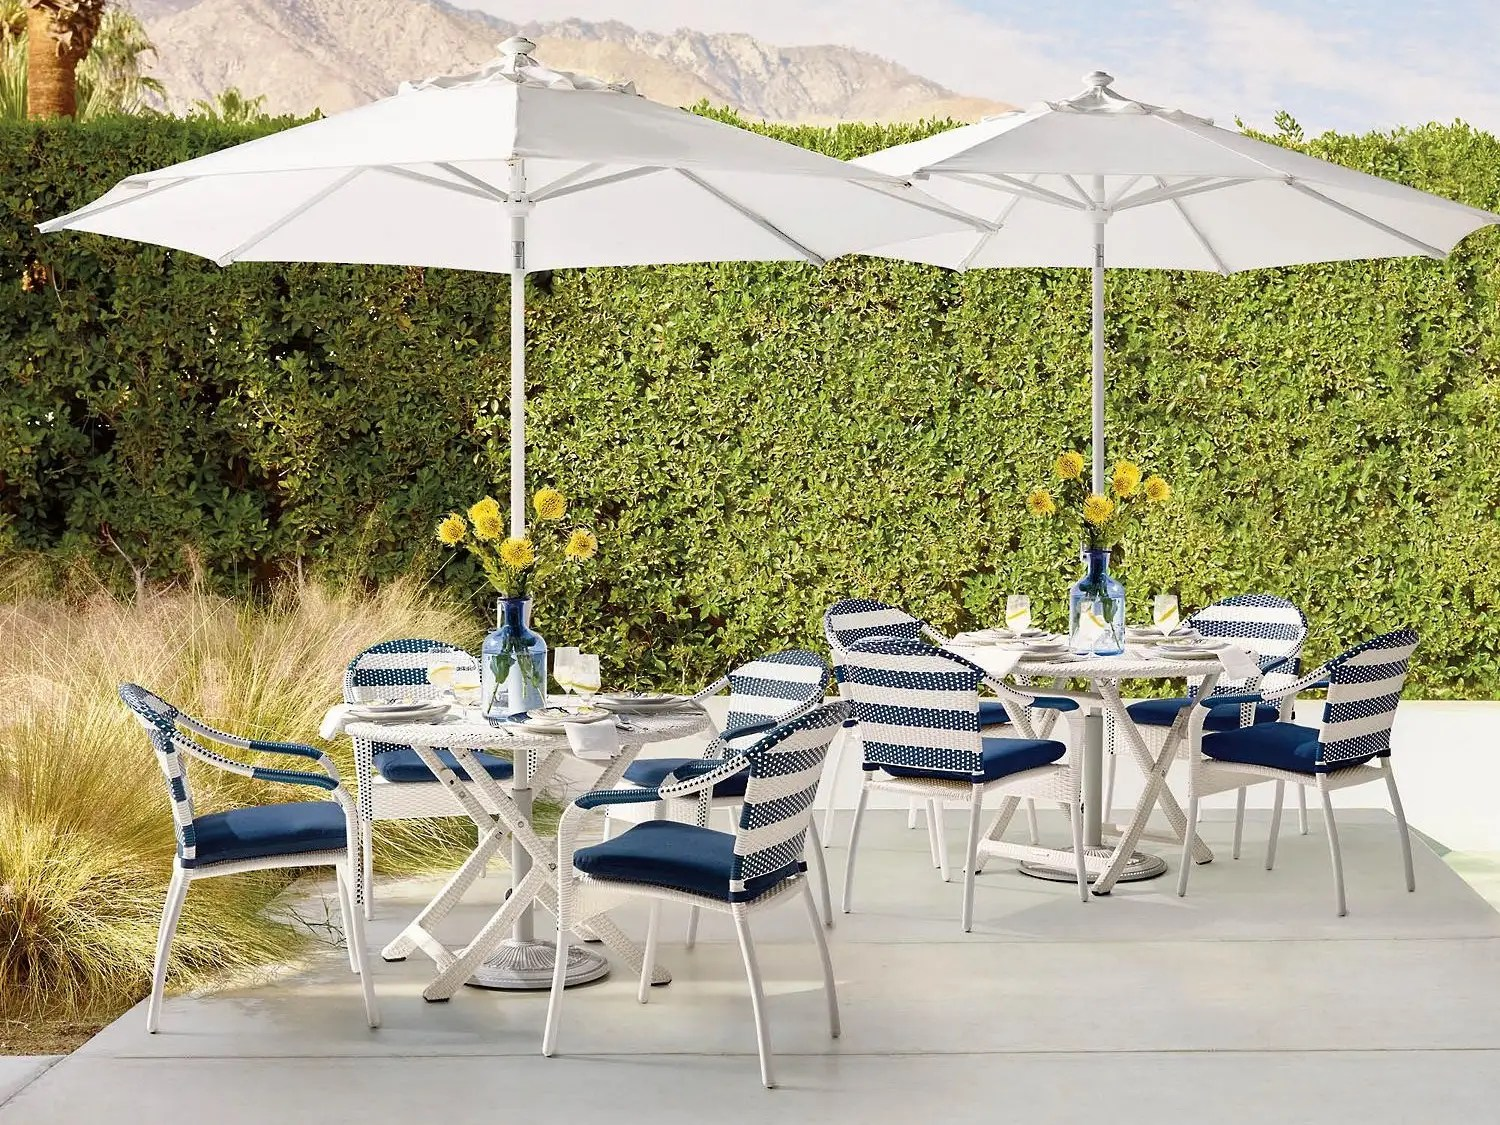 Best Outdoor Furniture Sales And Deals 2020 Business Insider - Garden Furniture Clearance Mercure Hotel